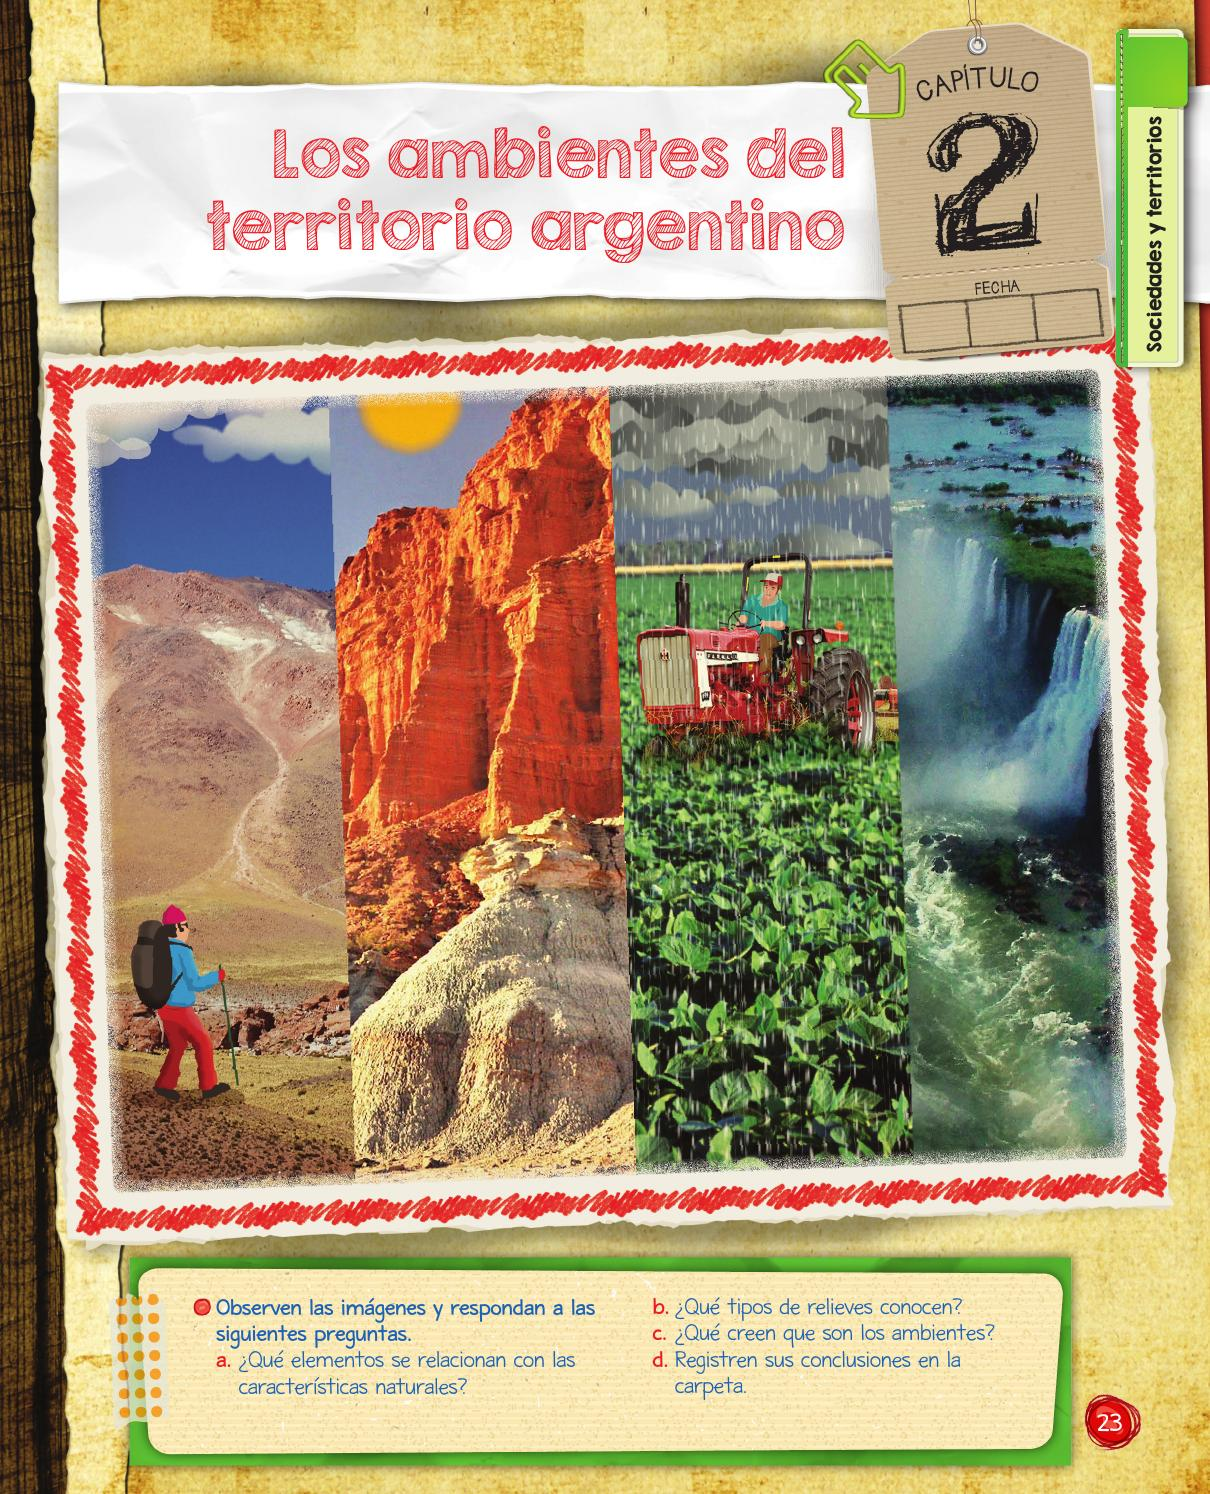 Soc5bon capitulo 2 by macmillan publishers s a issuu for Ambientes de argentina